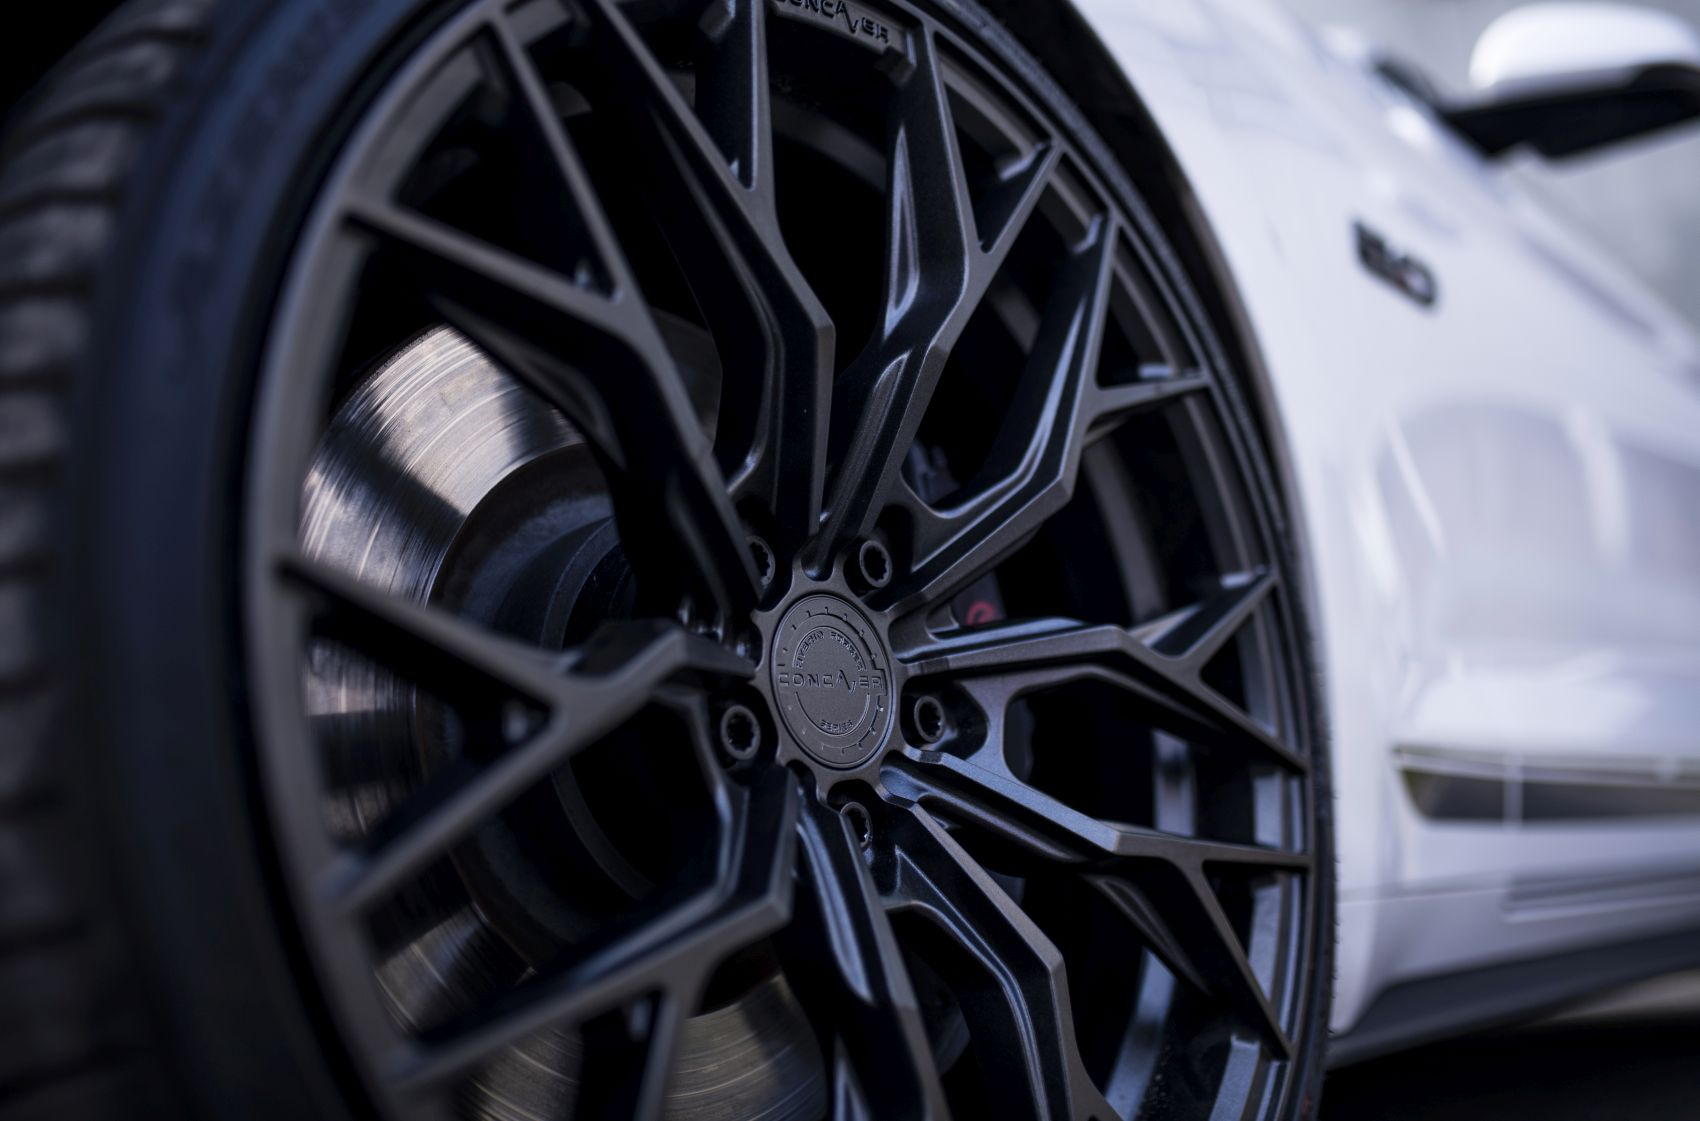 Ford Mustang Concaver CVR1 Carbon Graphite